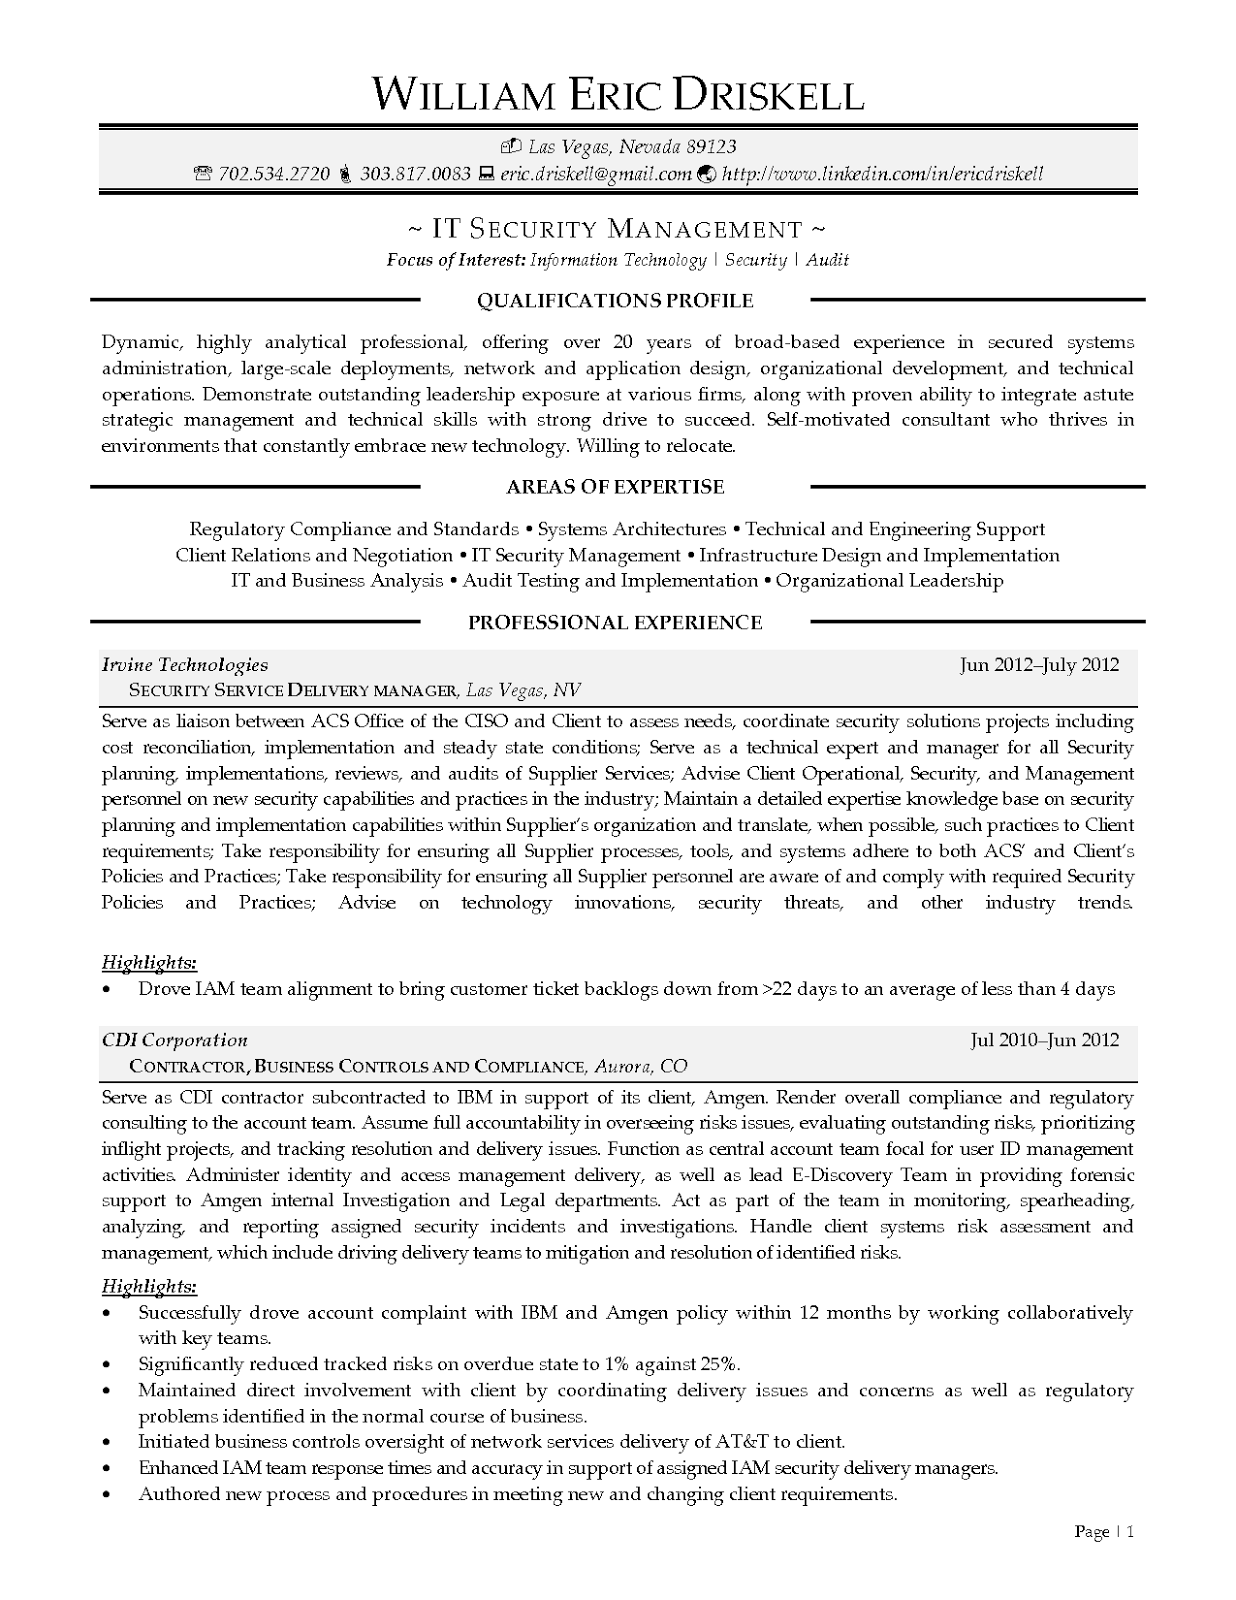 Relocation resume example